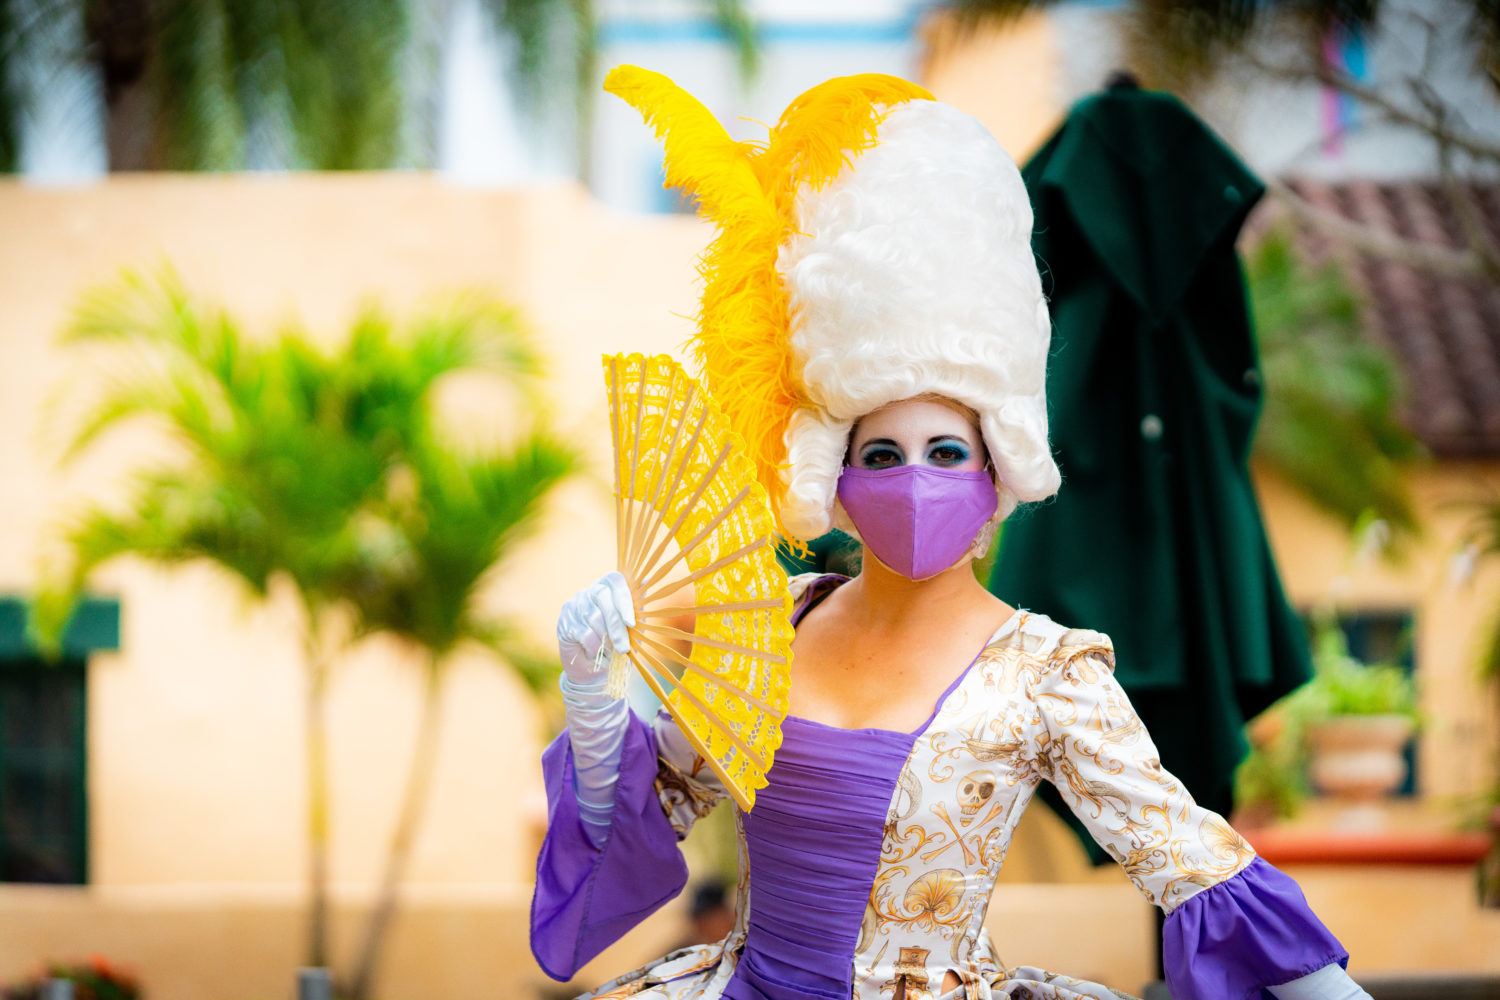 The wild and colorful performers at Mardi Gras 2021